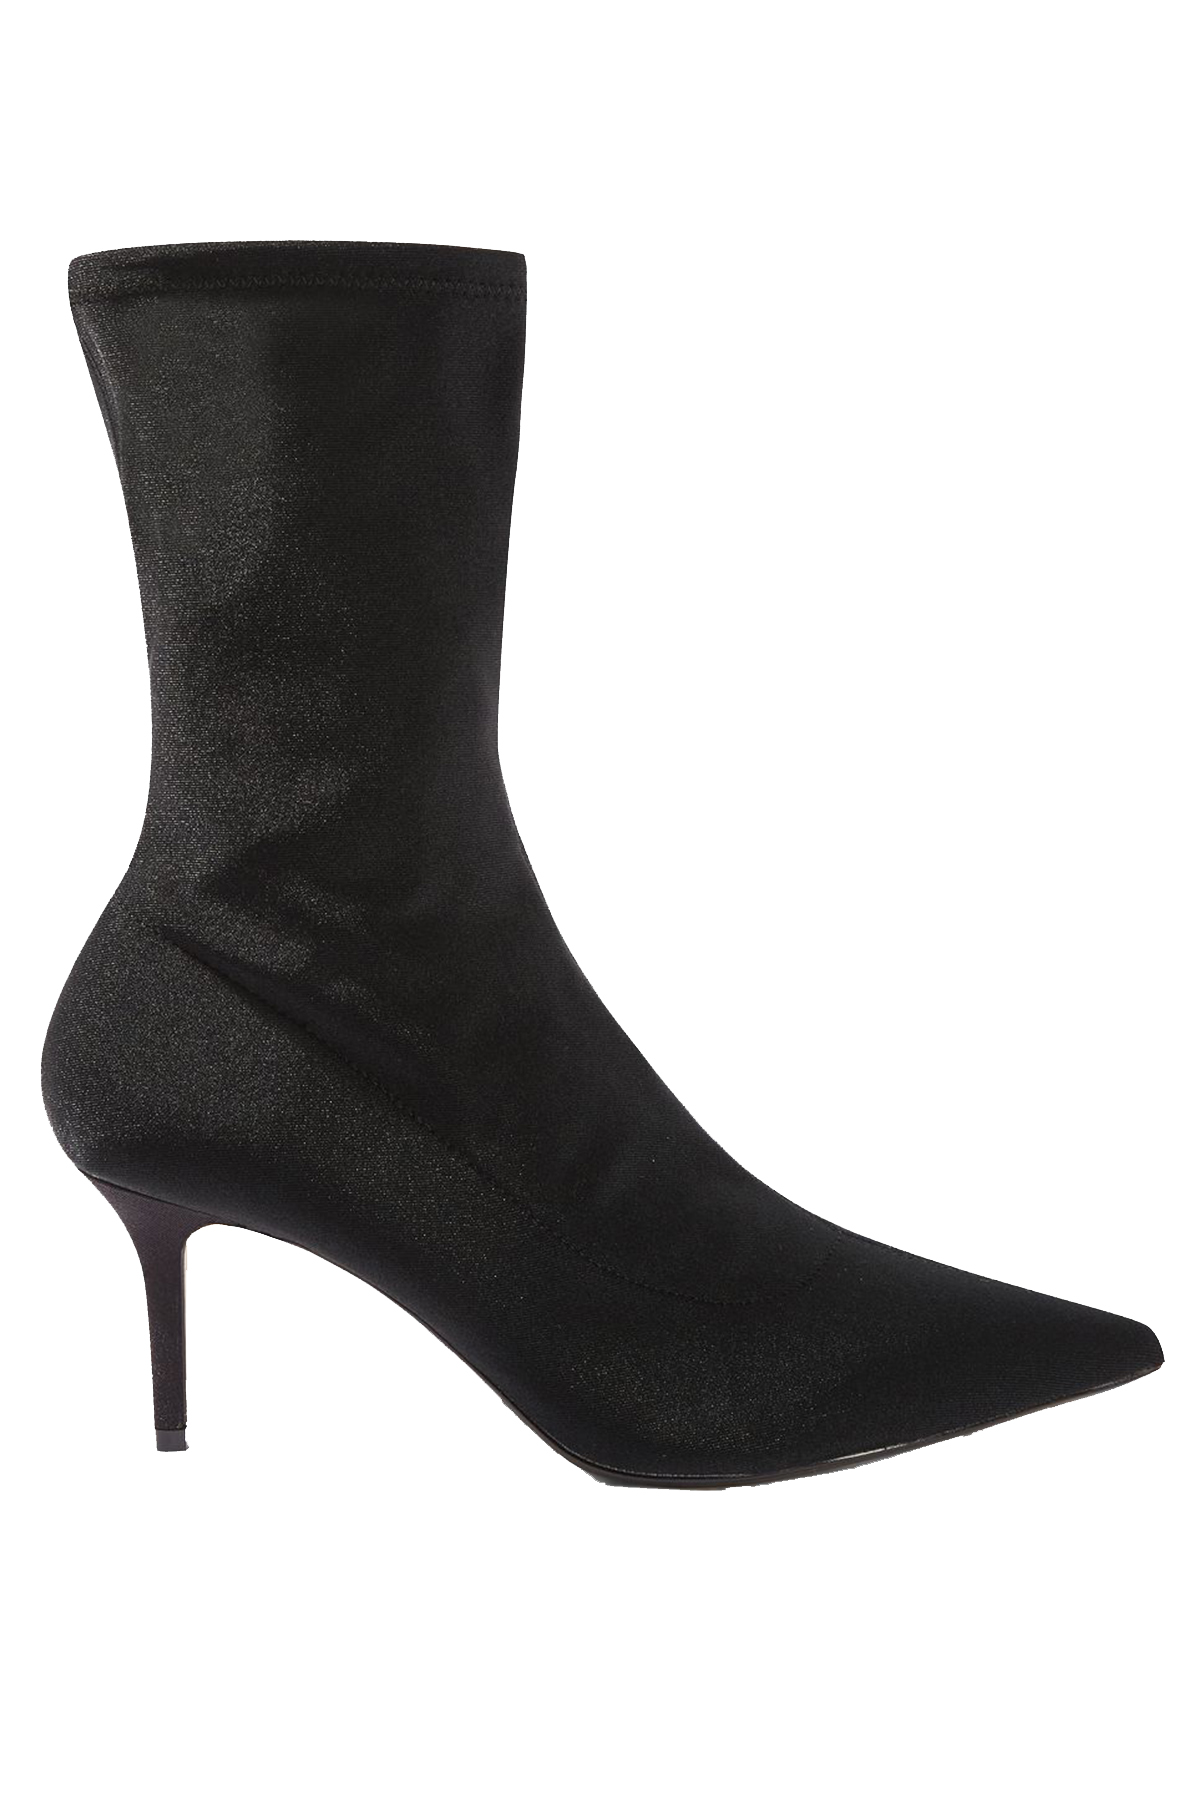 Click to buy Topshop sock boots